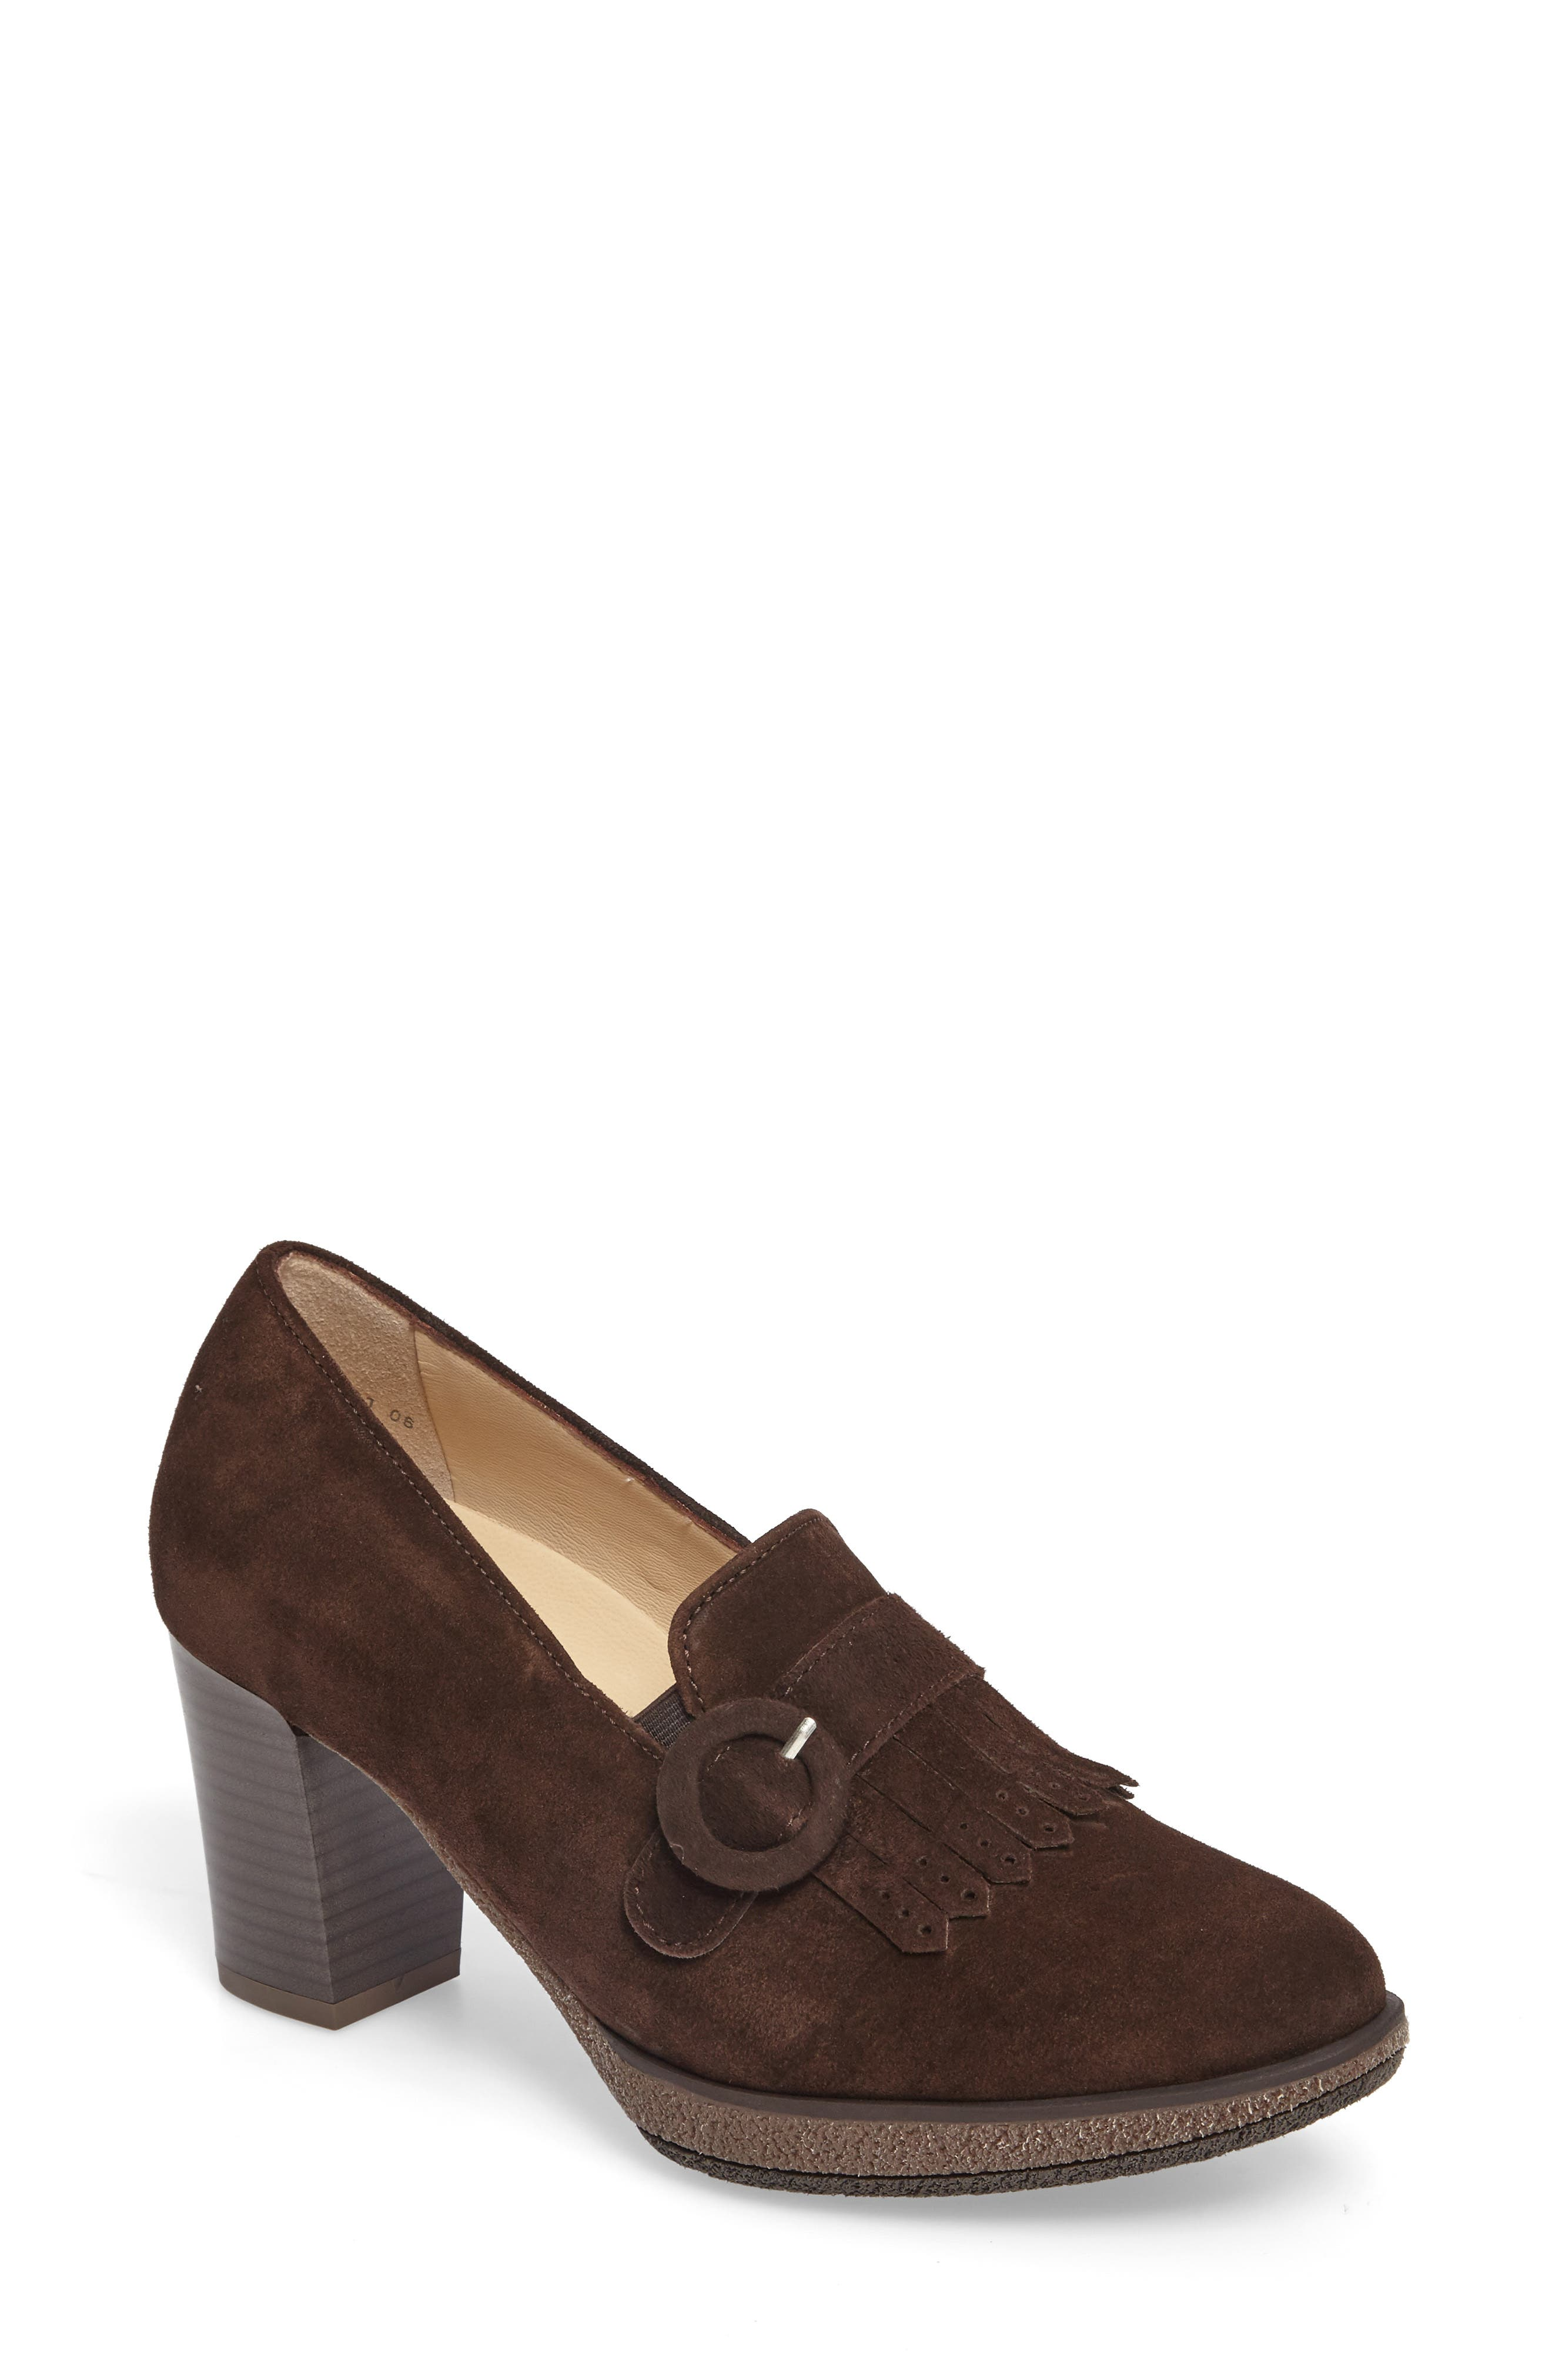 ARA Becky Loafer Pump, Main, color, BROWN SUEDE